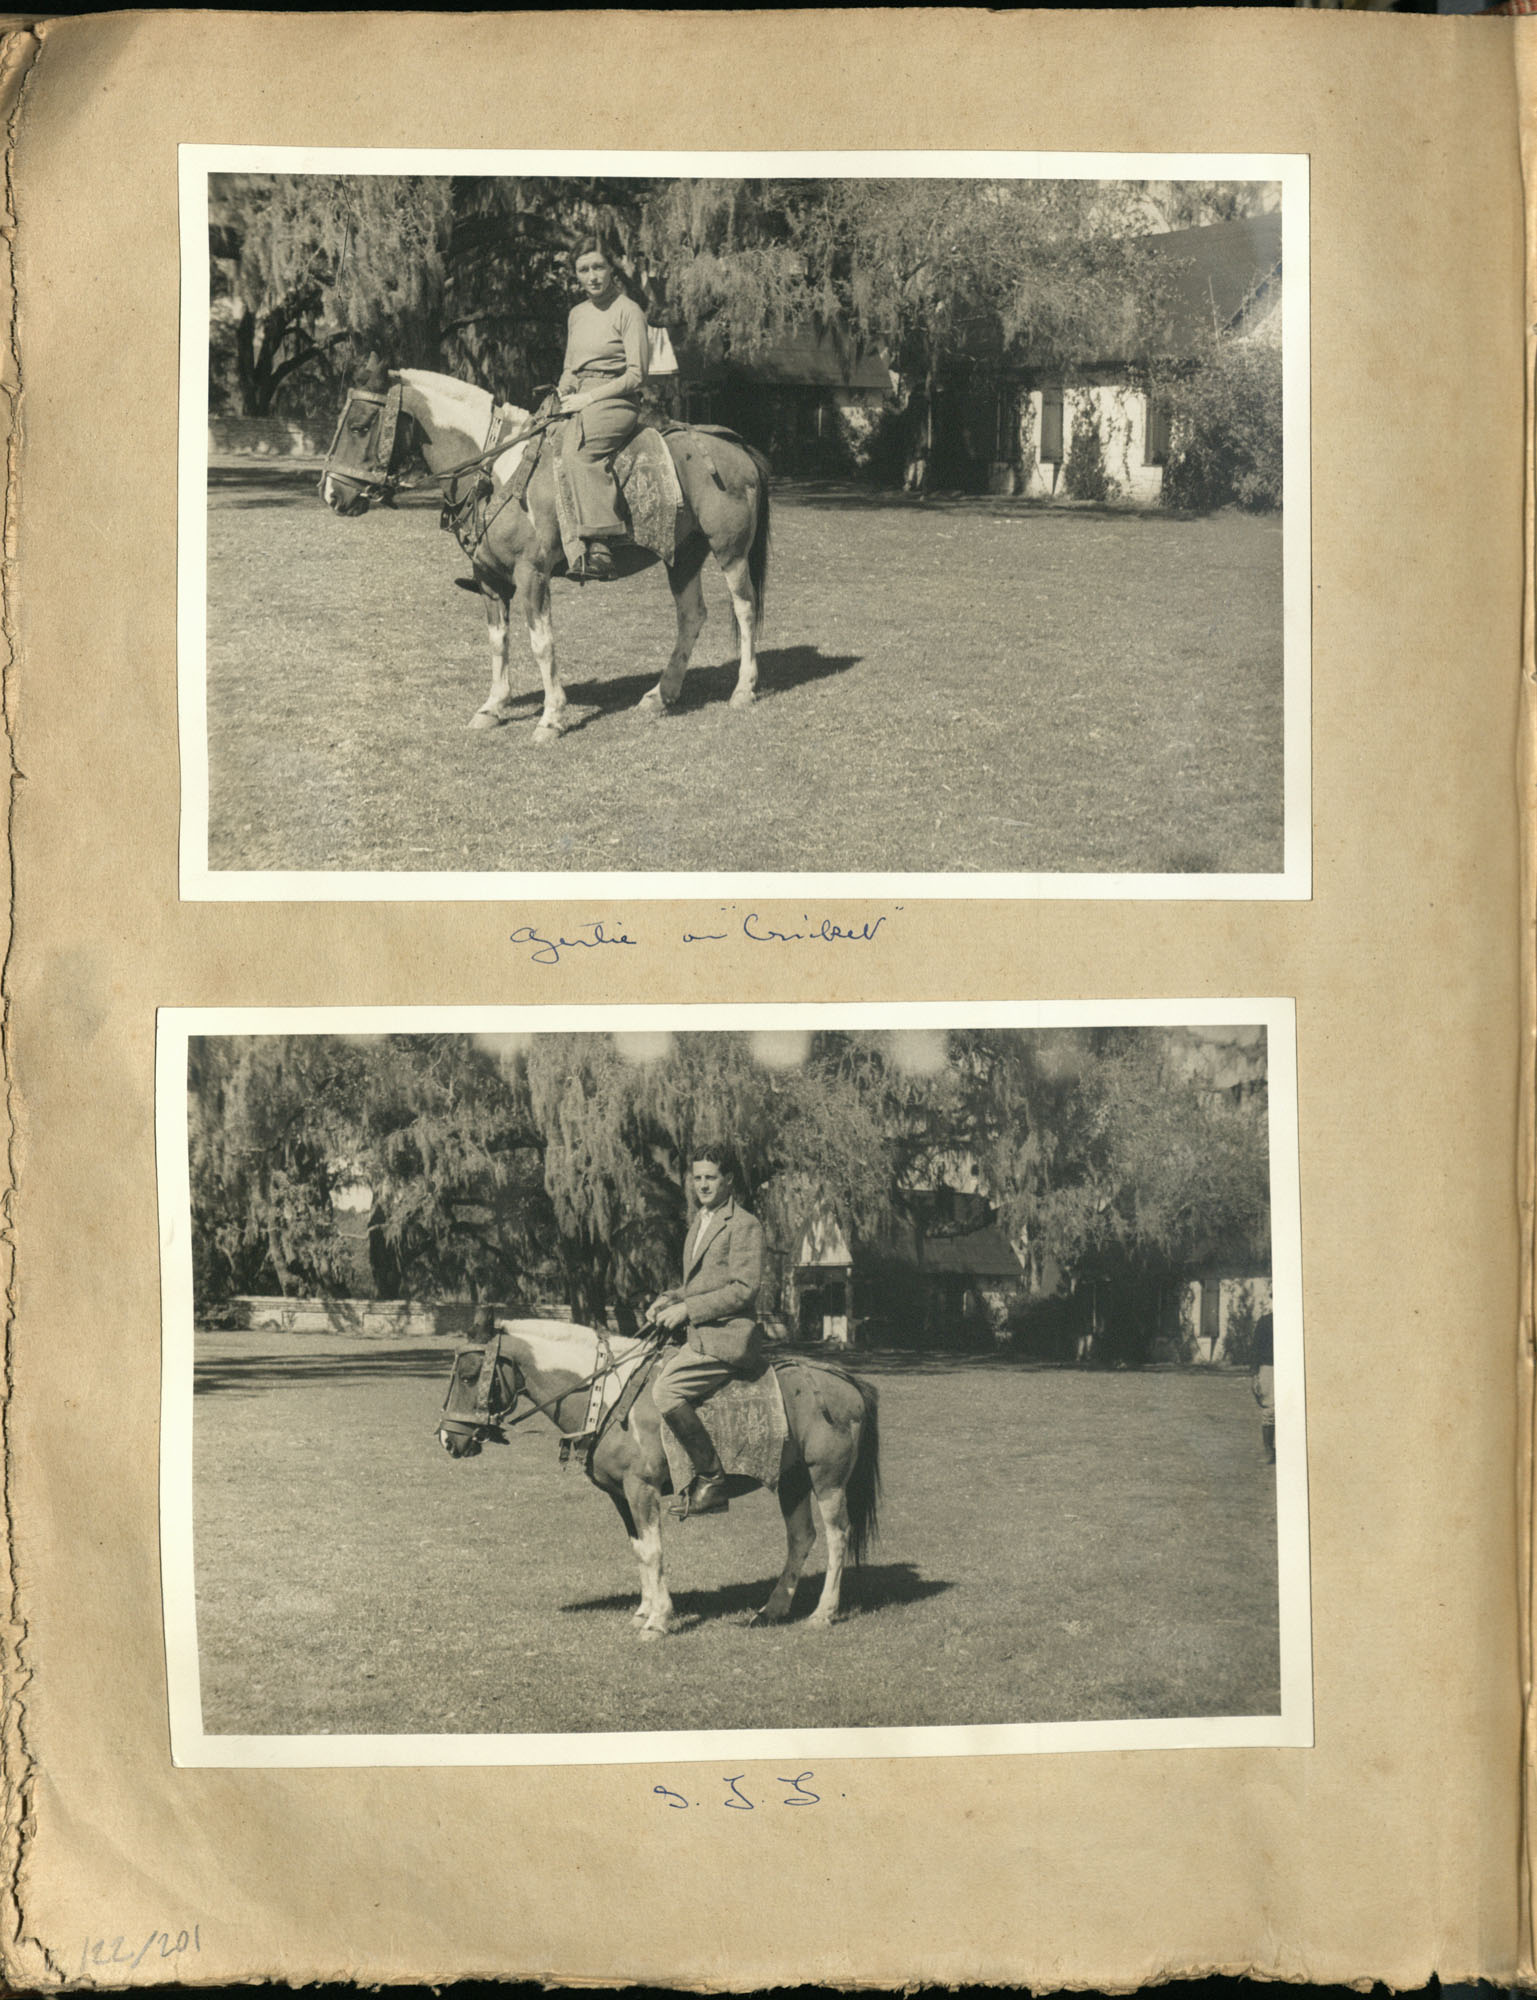 Early Medway and travels album, 1929-1937, page 122